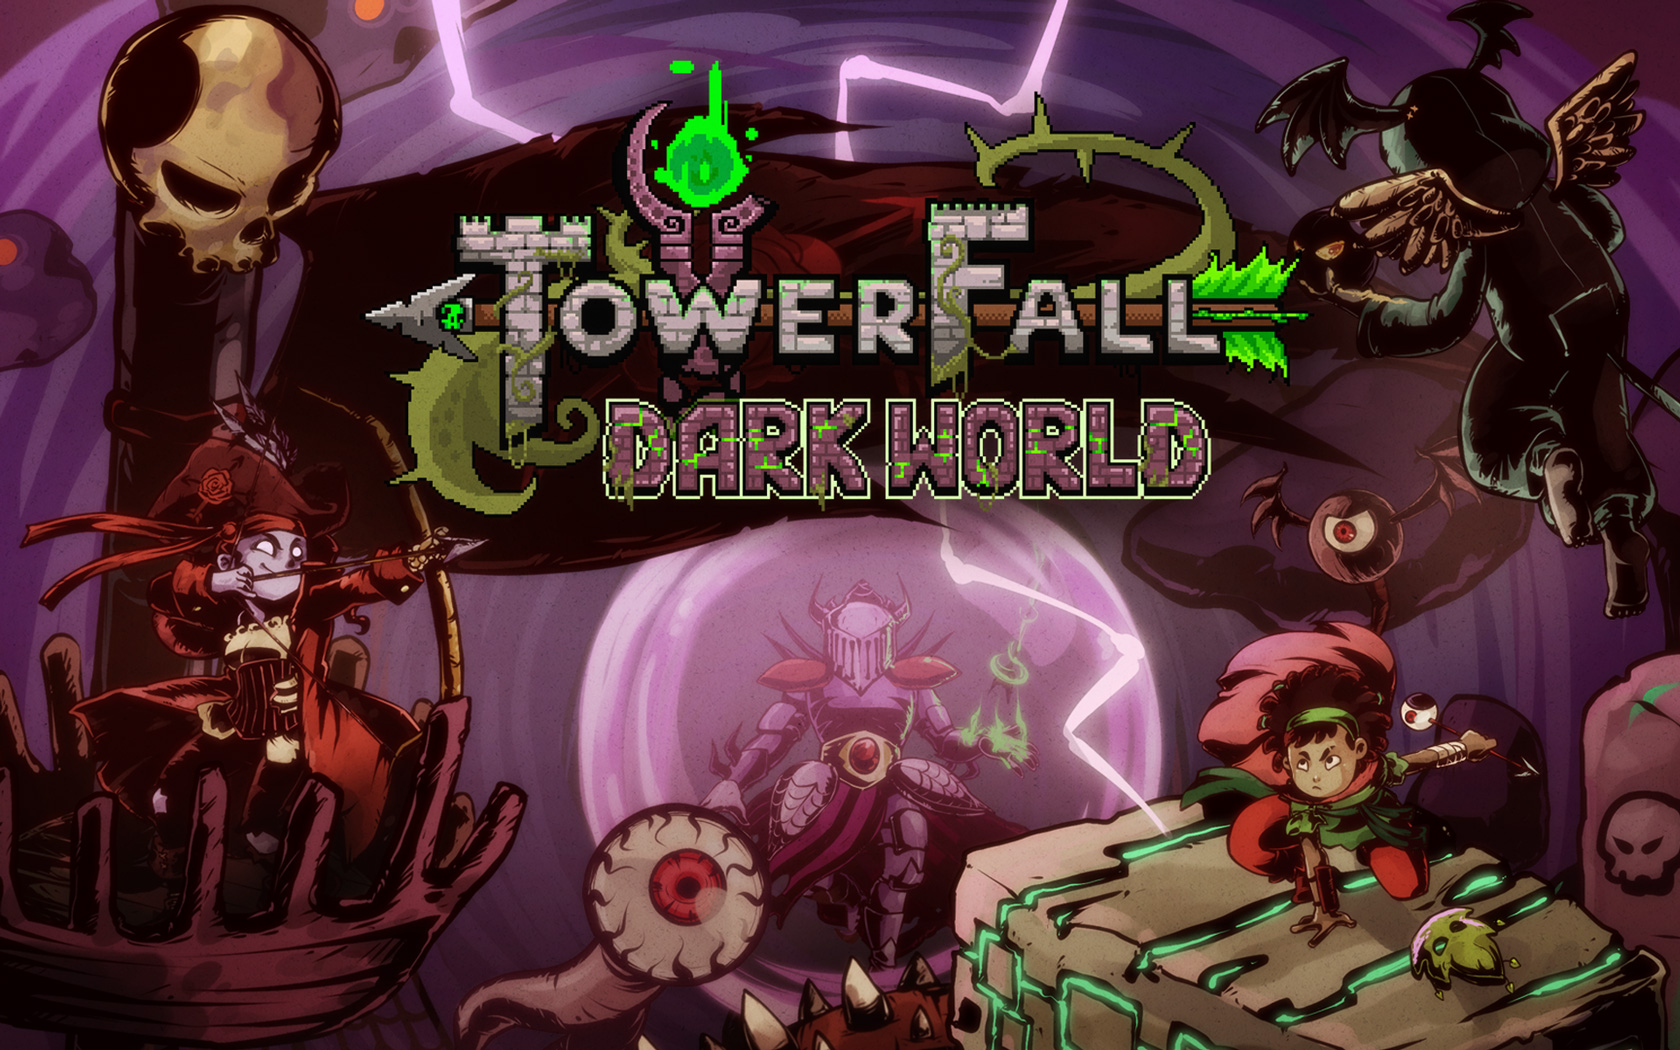 Free TowerFall Ascension Wallpaper in 1680x1050